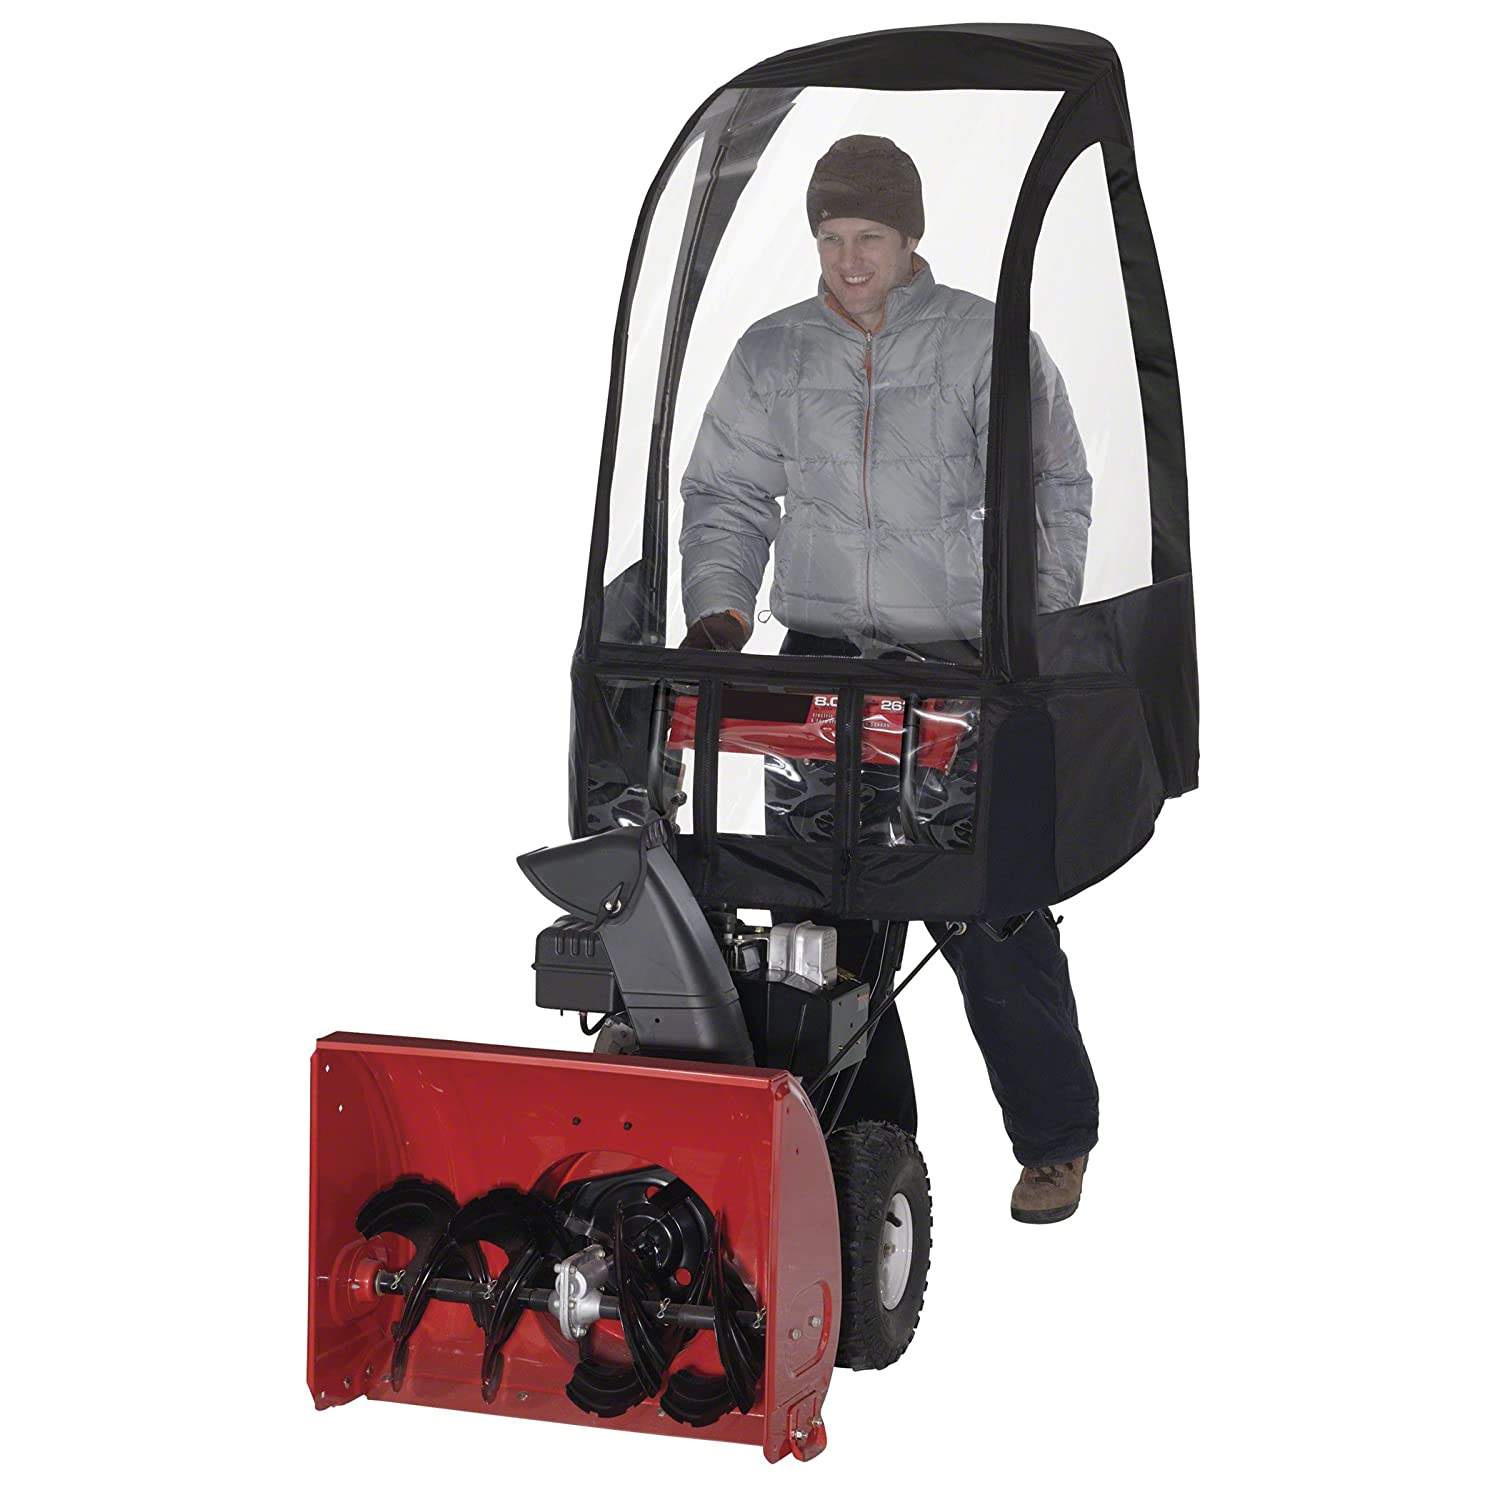 Snow Blower Found : Snow thrower cab blower shovel accessories protection